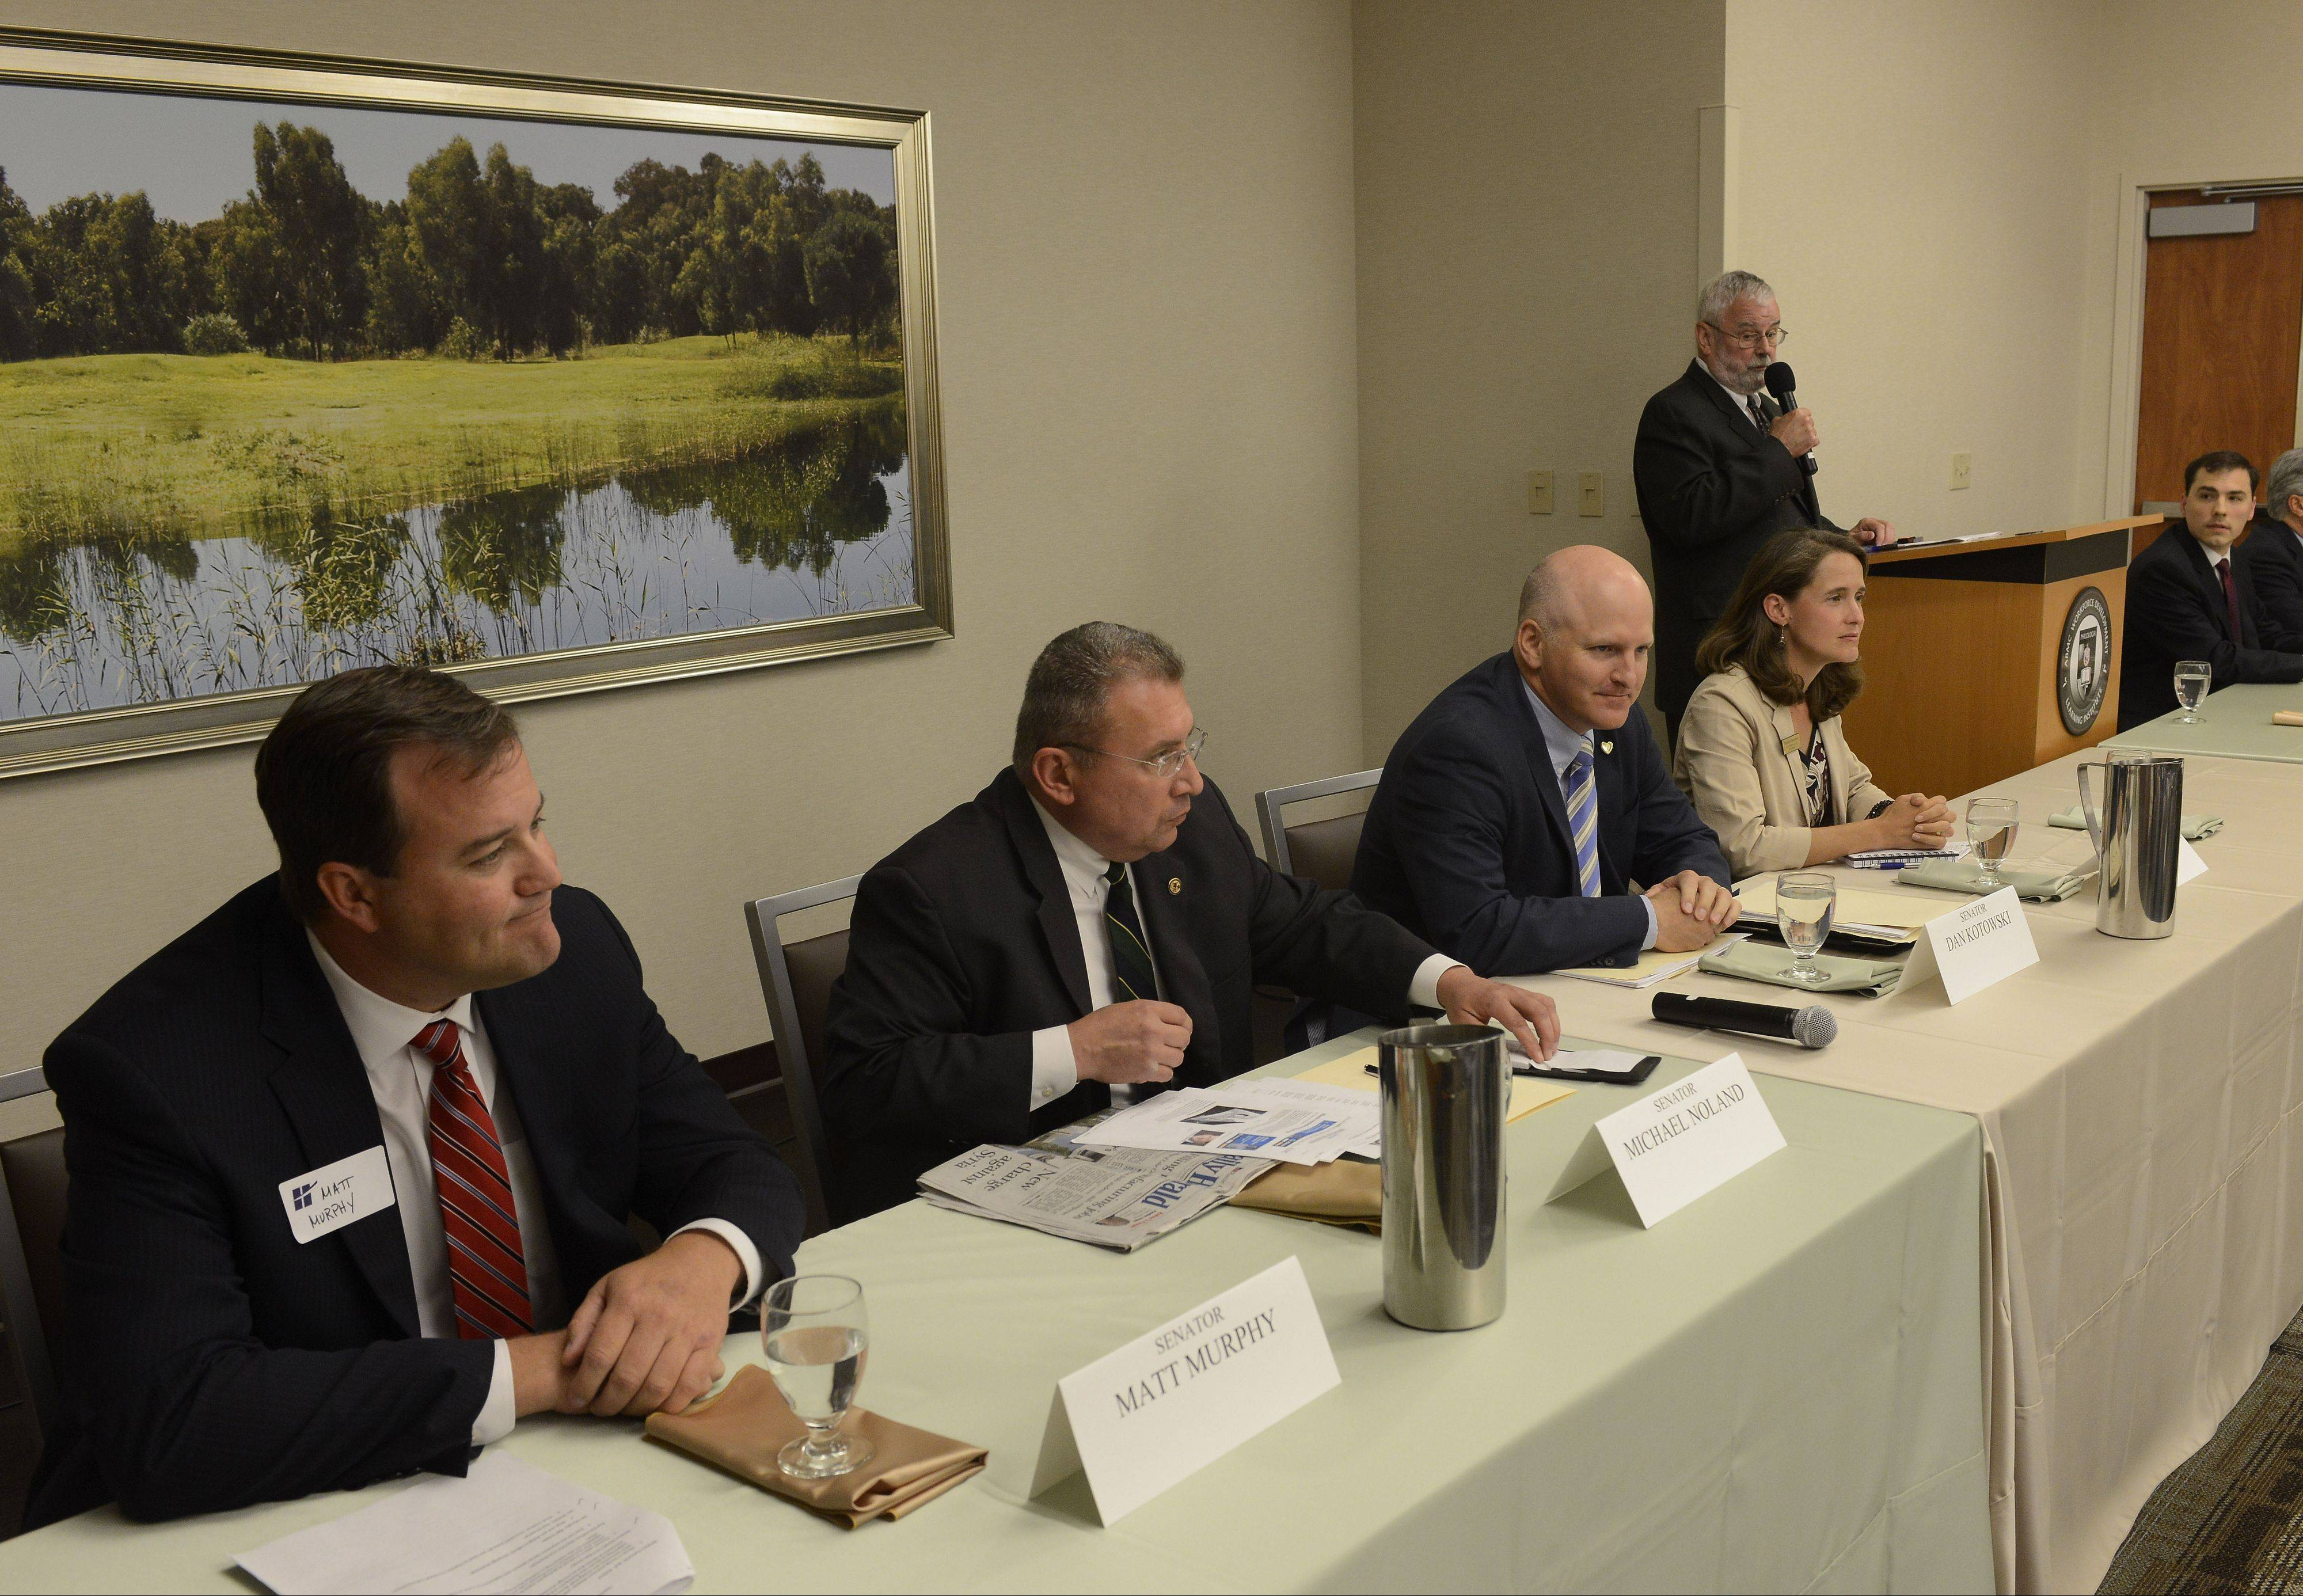 Hoffman Estates Mayor William McLeod, standing, moderates the Hoffman Estates Chamber of Commerce's annual legislative lunch at the Alexian Brothers Women and Children's Hospital in Hoffman Estates Friday. From left to right are state senators Matt Murphy, Michael Noland and Dan Kotowski, and representatives Michelle Mussman, Tom Morrison and Fred Crespo.